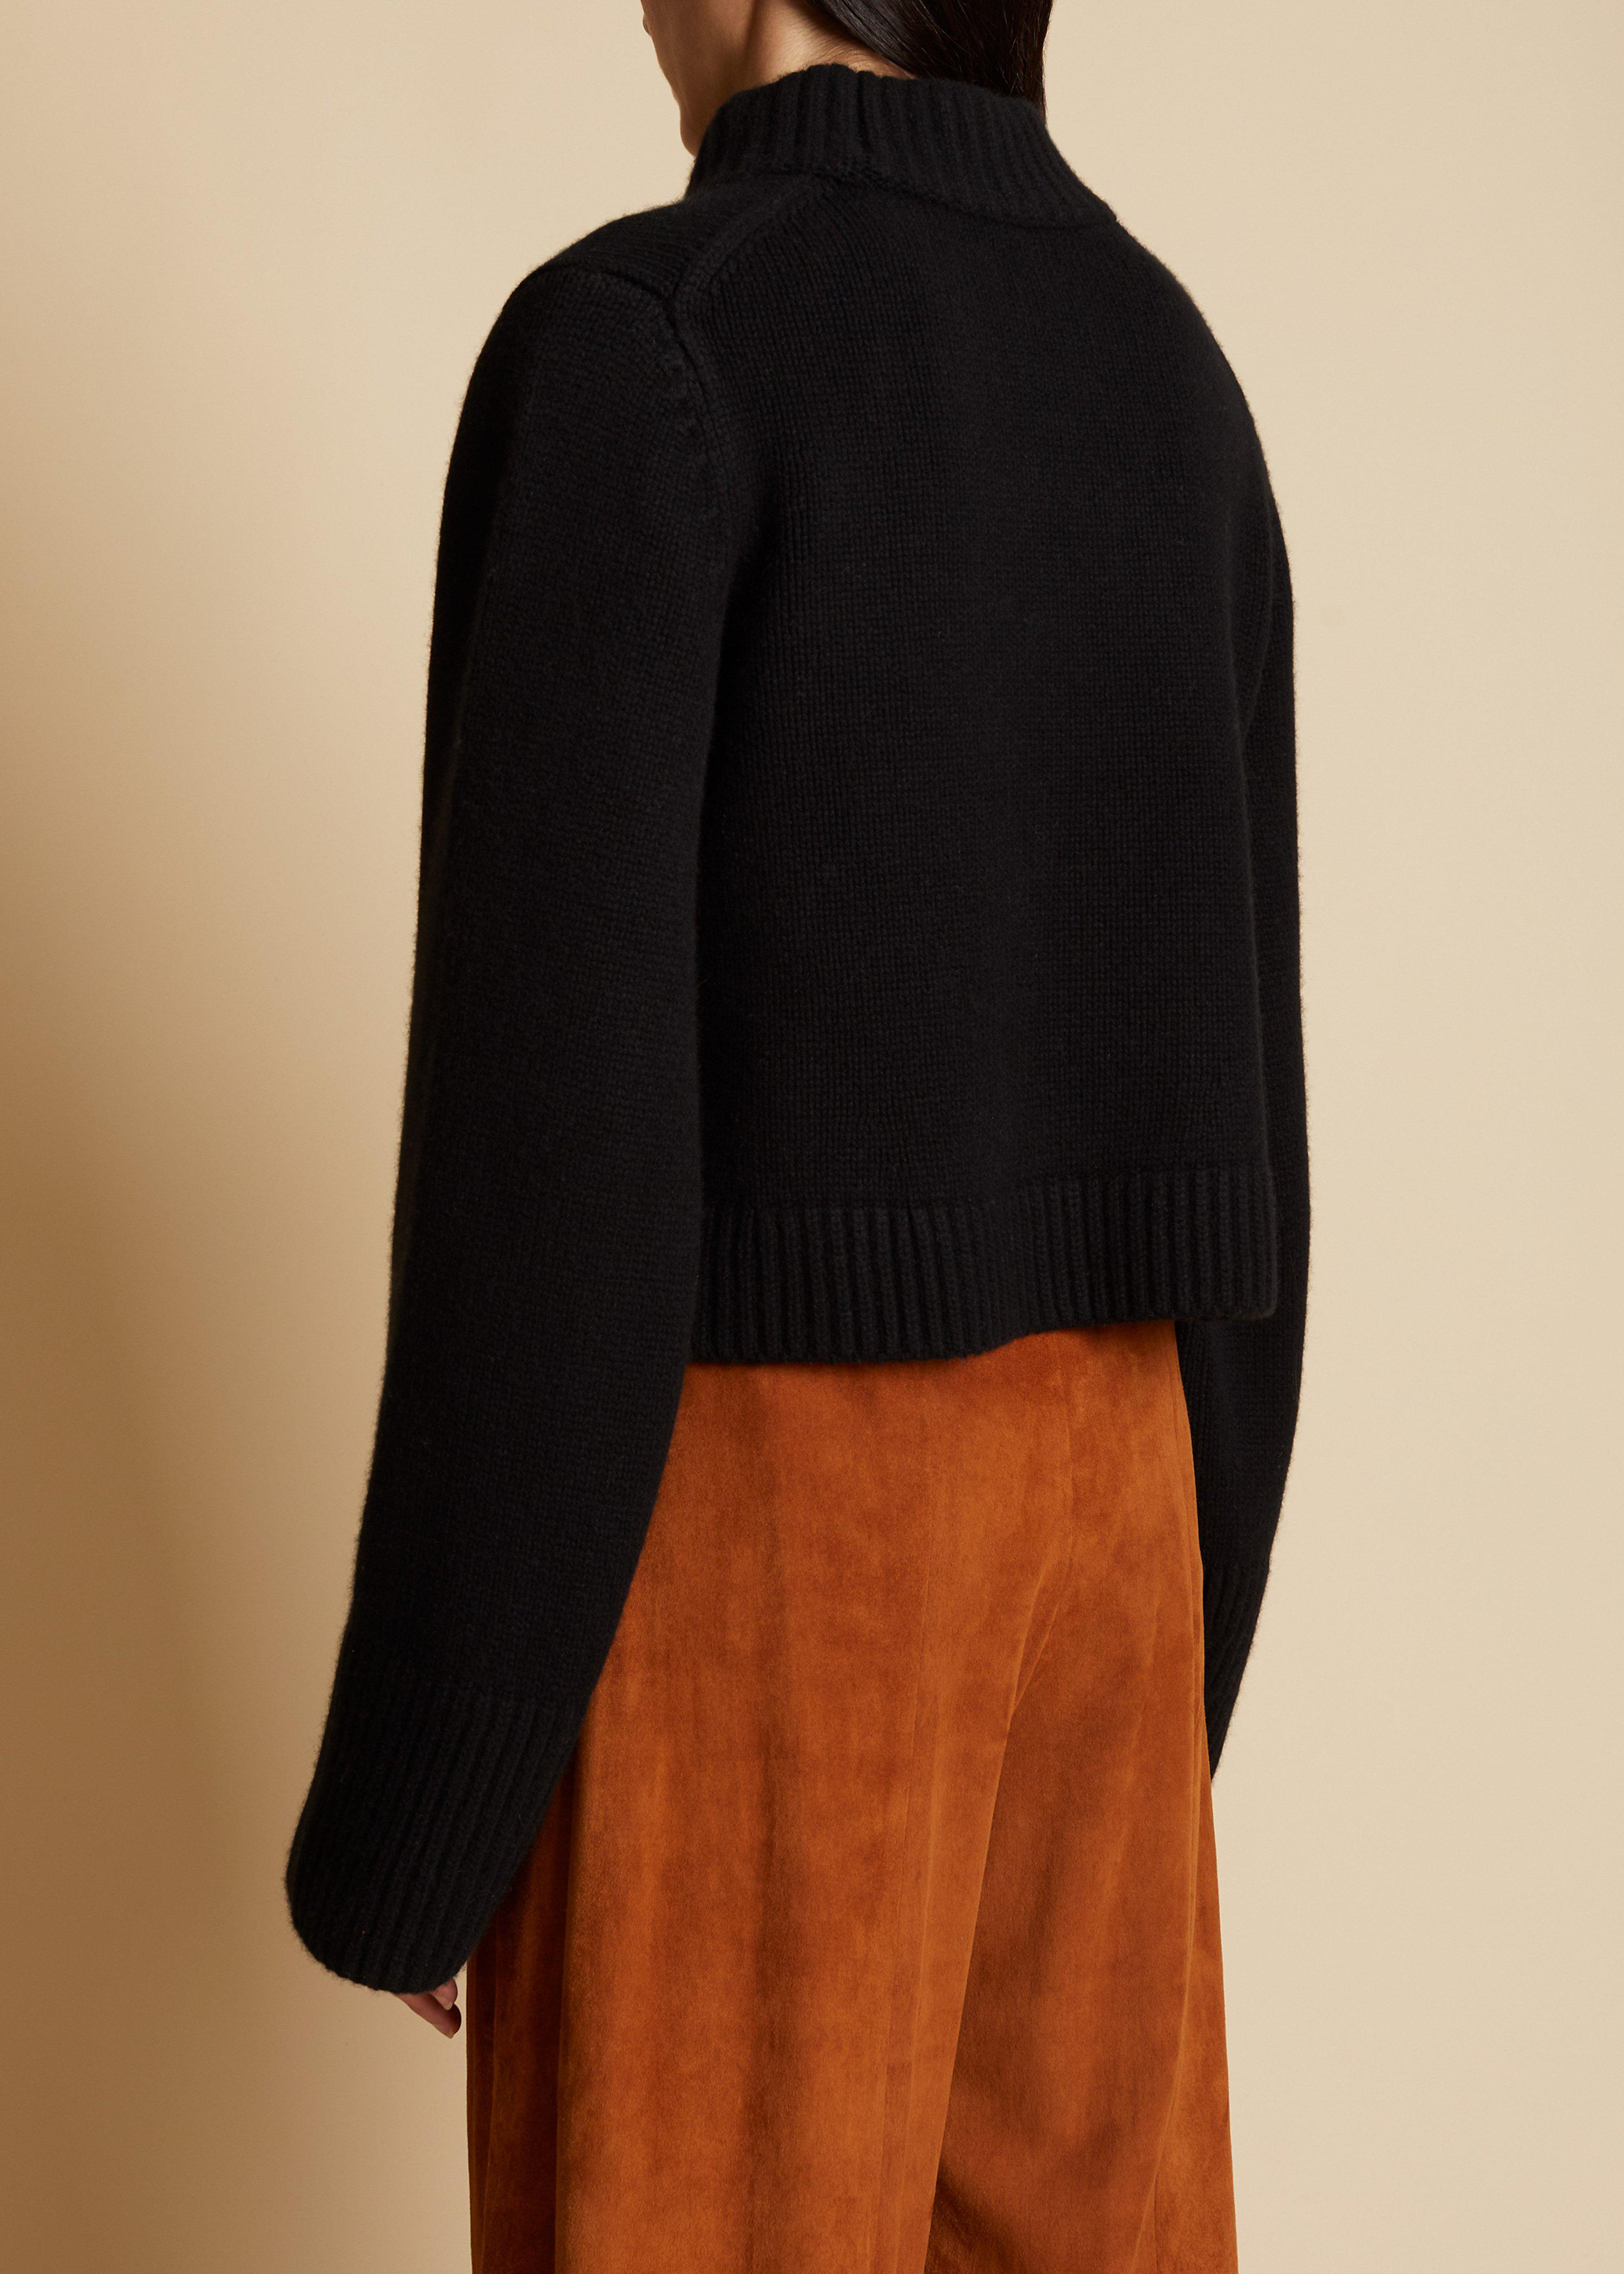 The Lima Sweater in Black 2